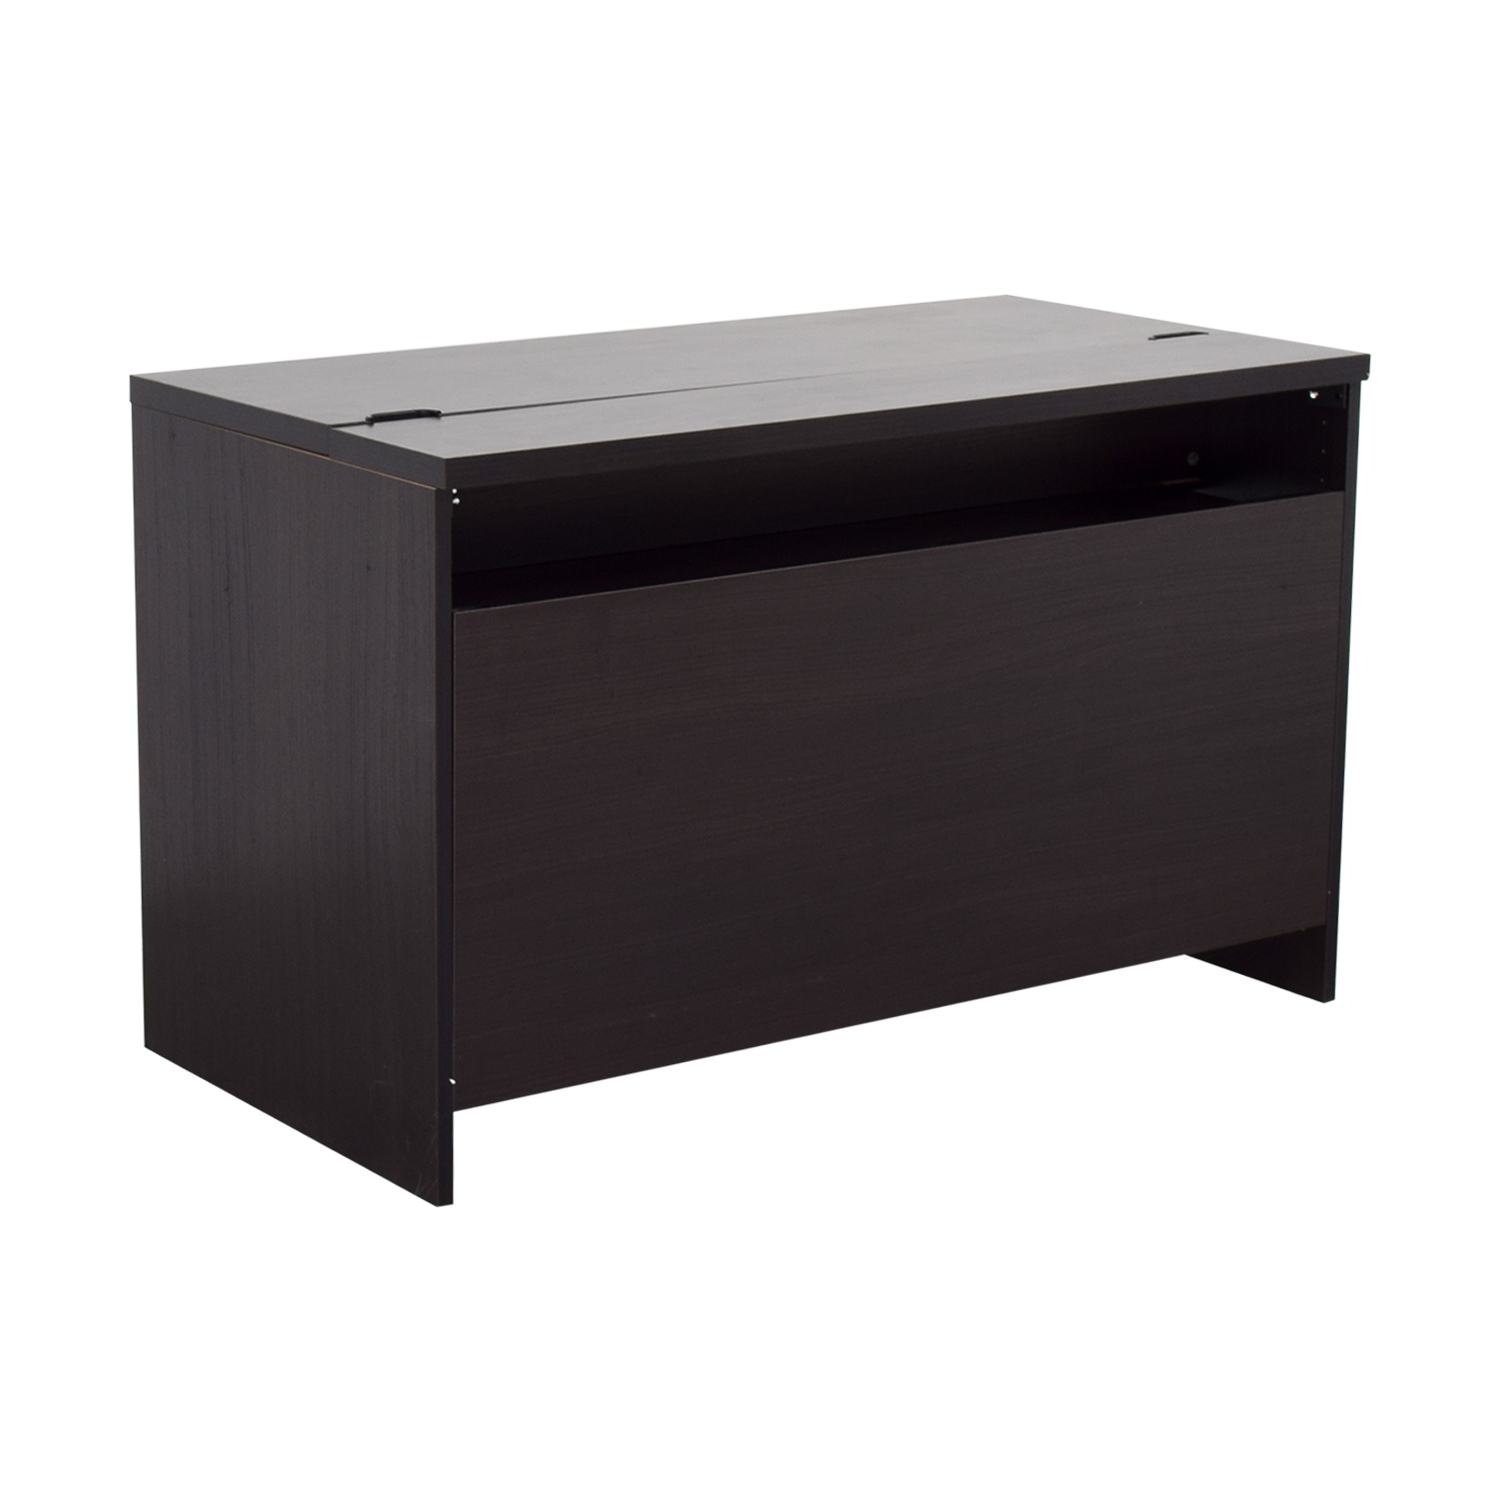 83 off ikea ikea black office desk tables. Black Bedroom Furniture Sets. Home Design Ideas